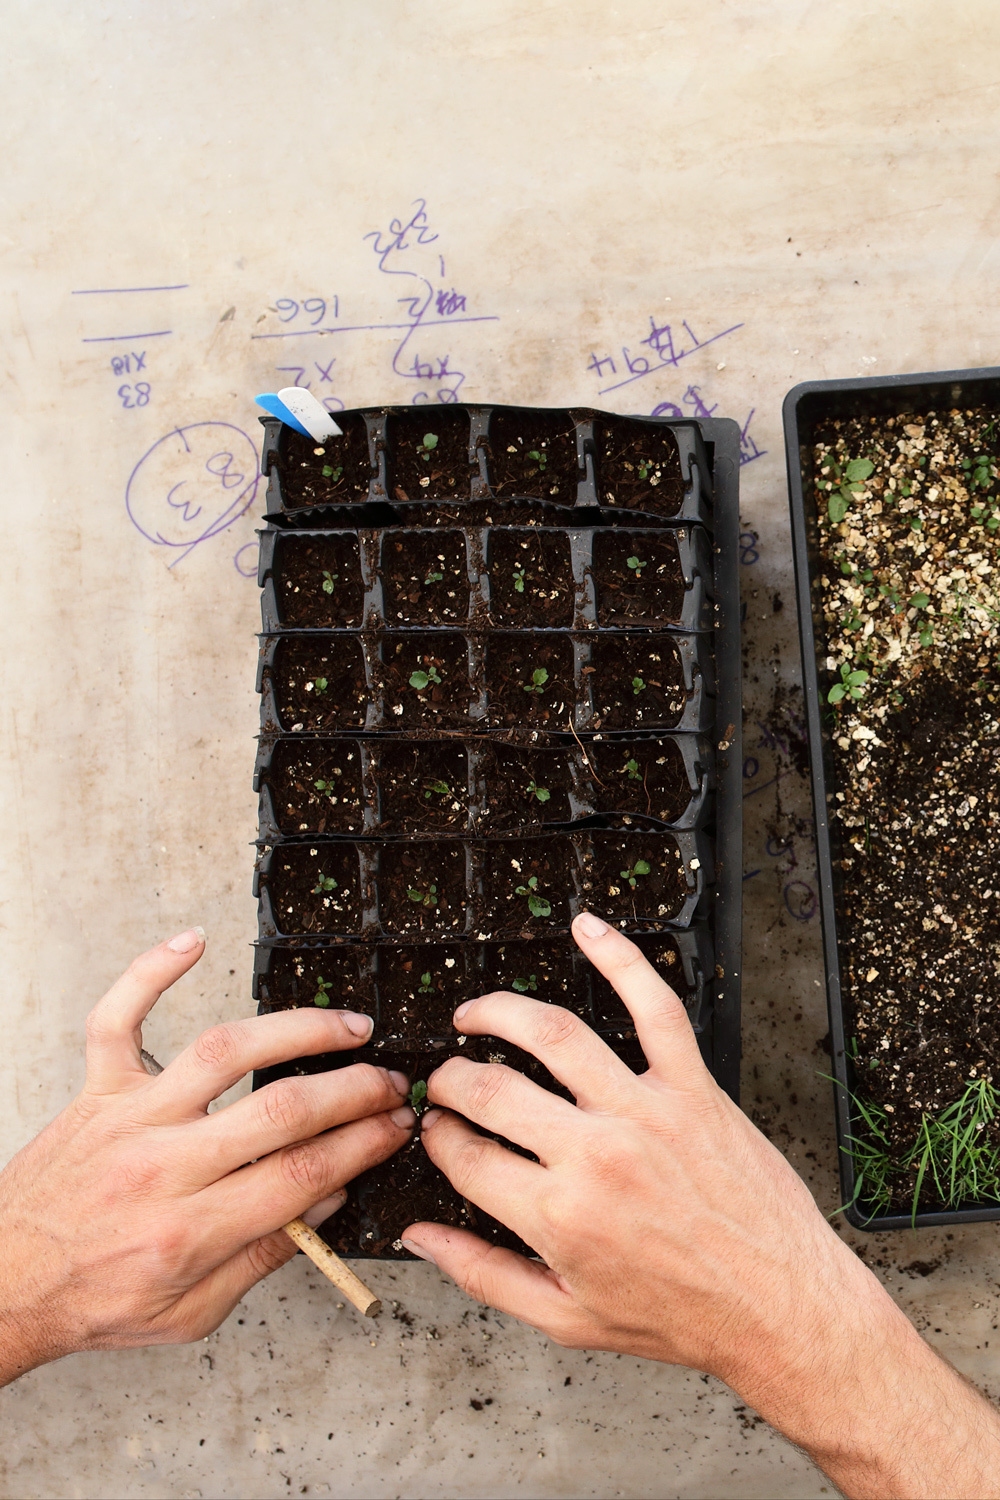 Grid One Picking Out Seedlings